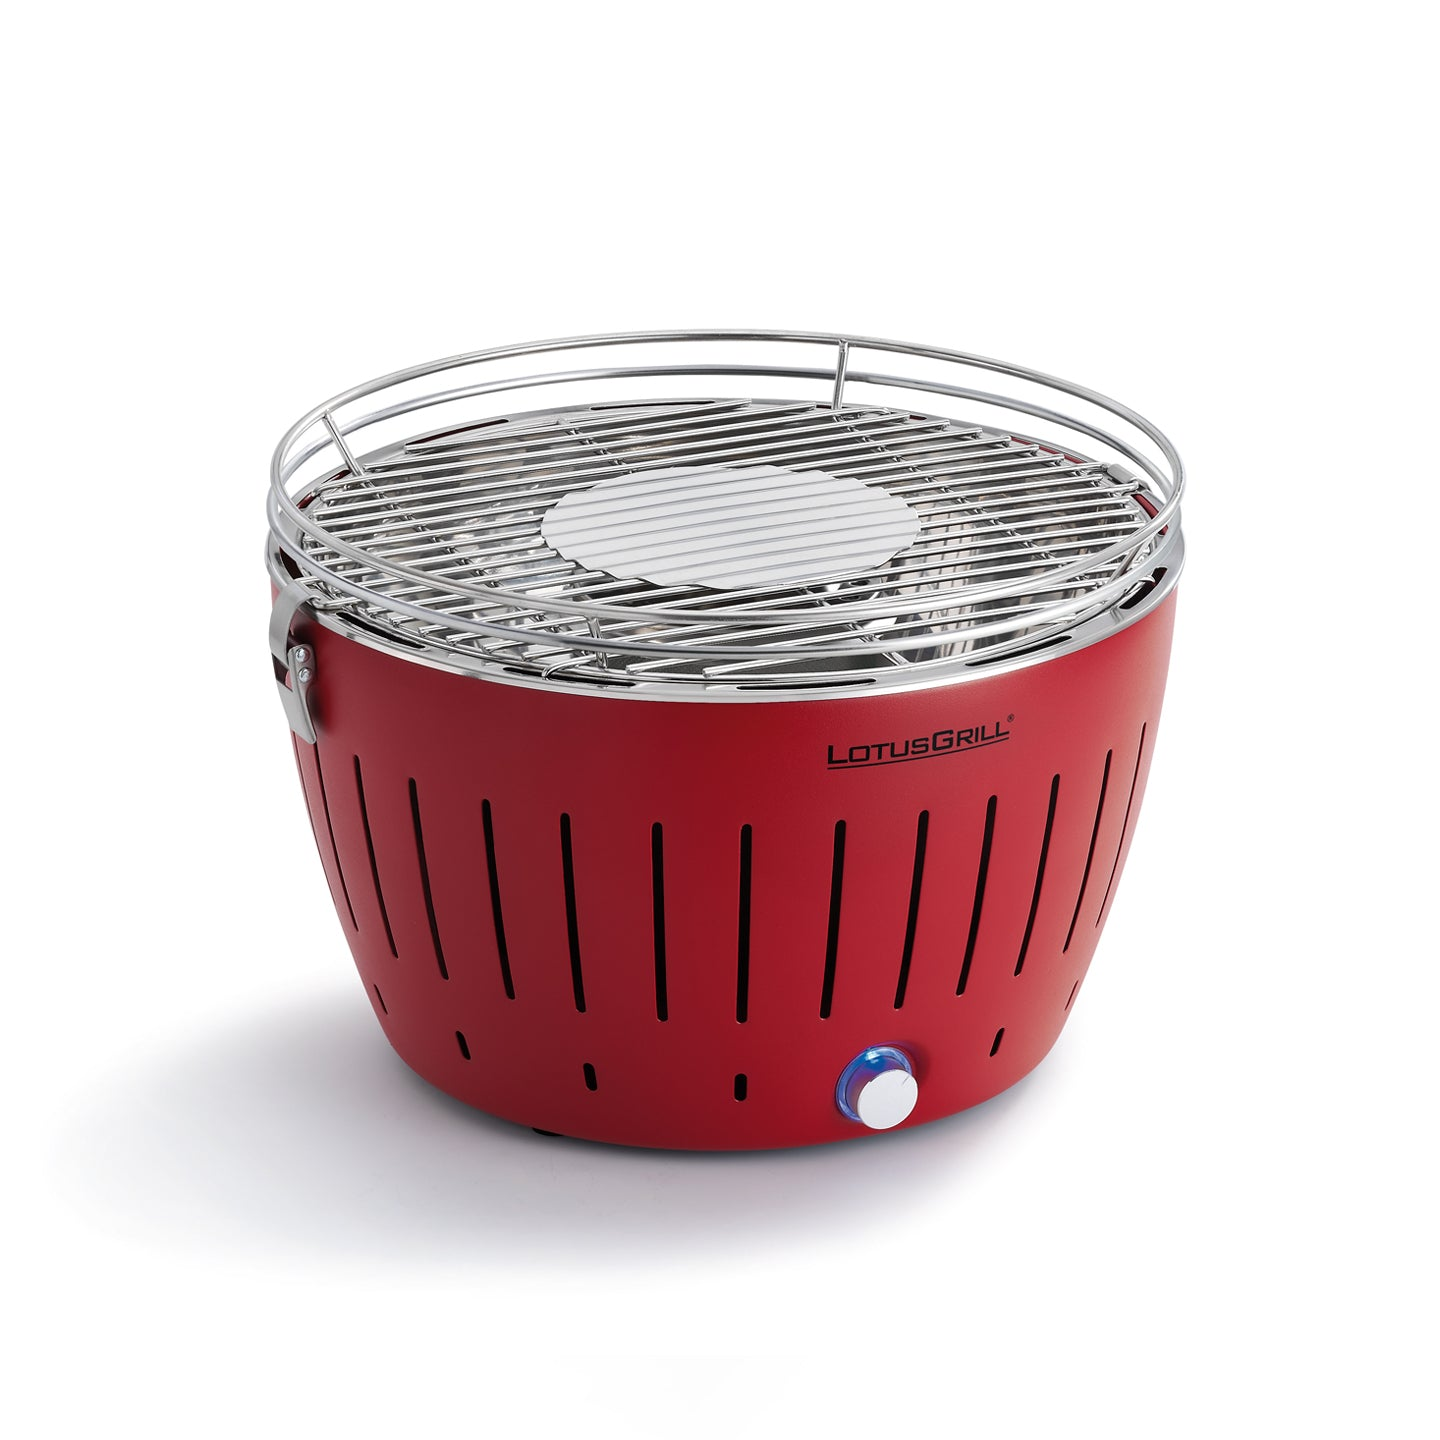 Lotus Grill BBQ Red